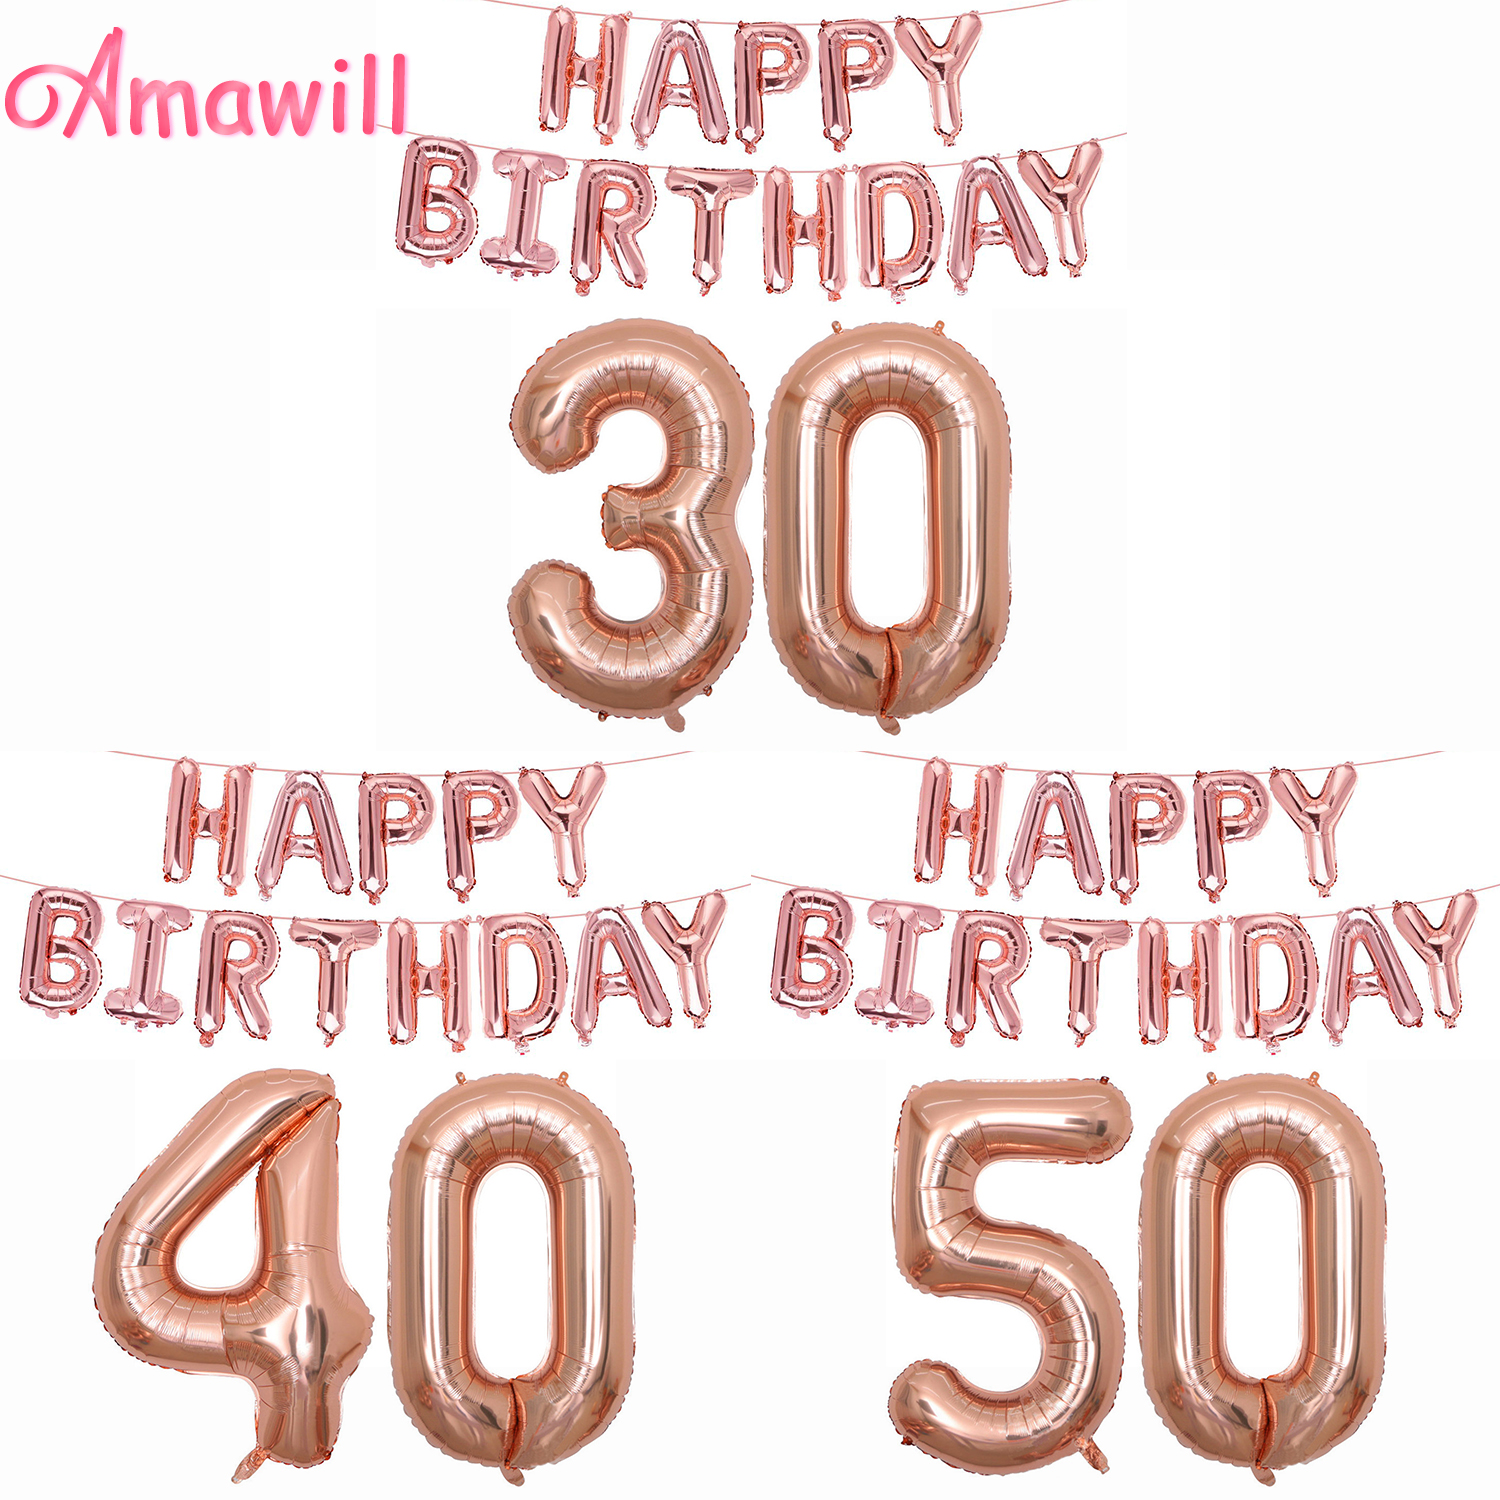 Amawill Rose Gold Happy Birthday 30 Foil Balloons 16th